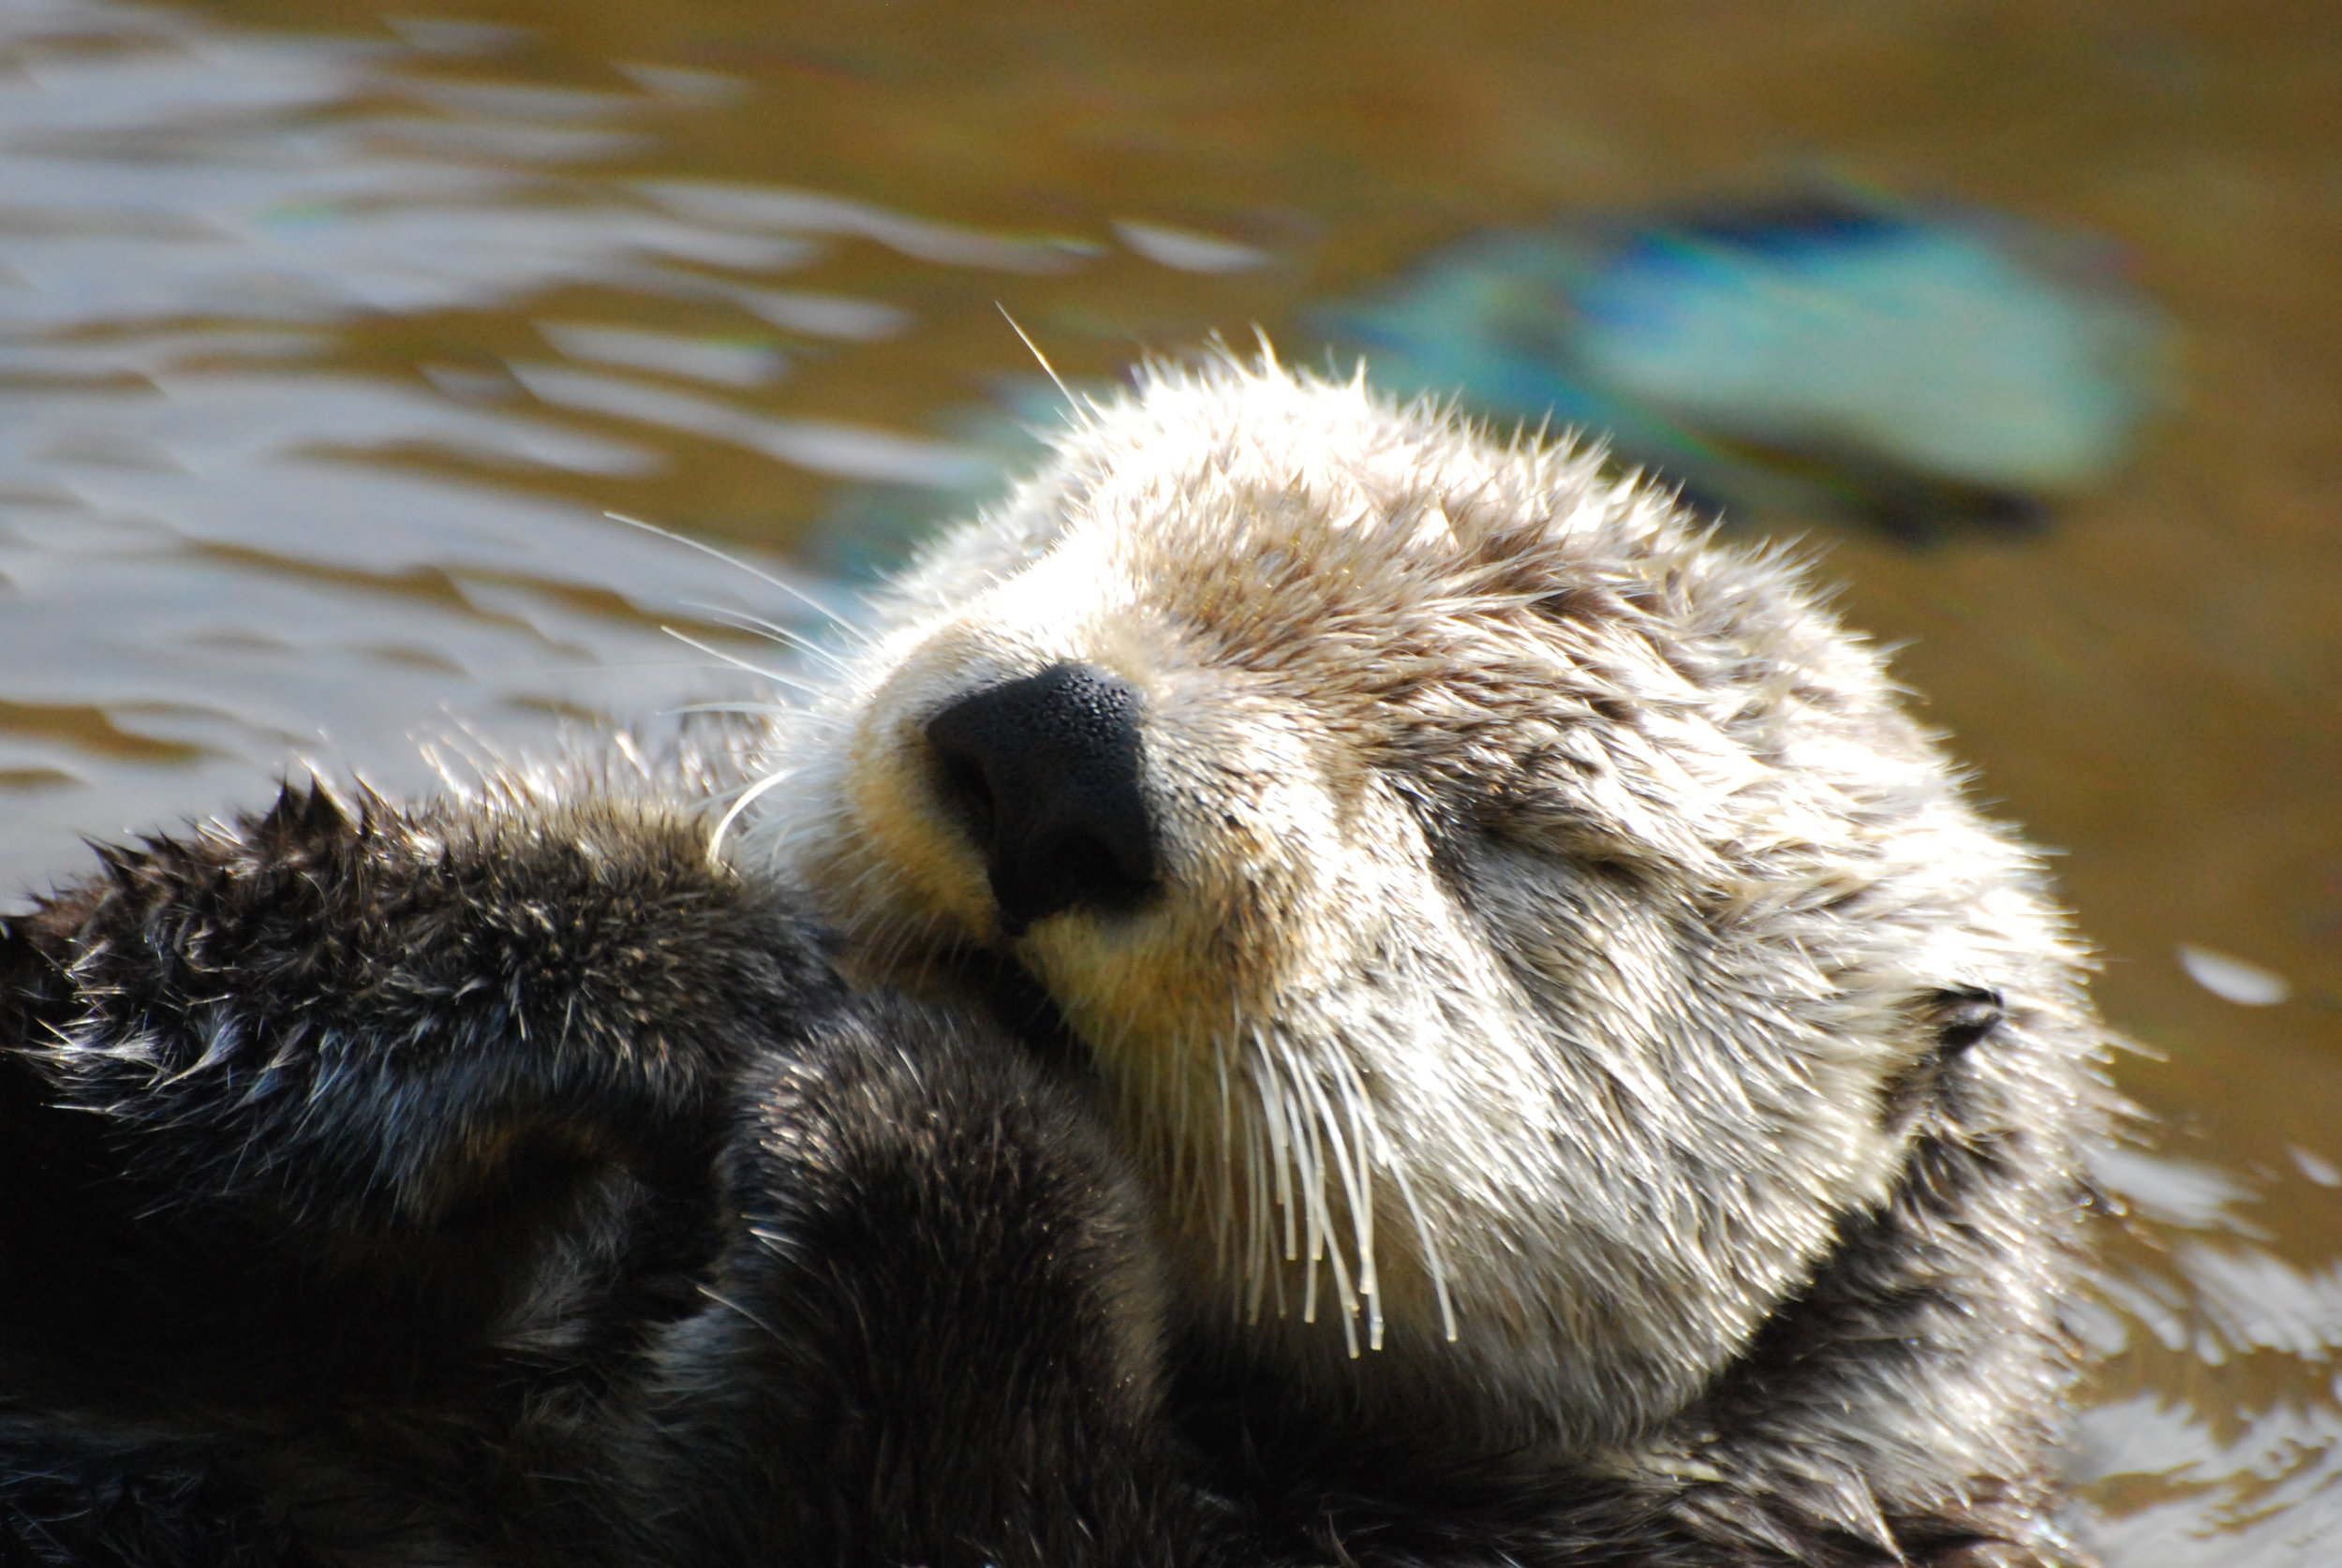 Sea Otter Naps with Her Paws Curled Up to Her Chin